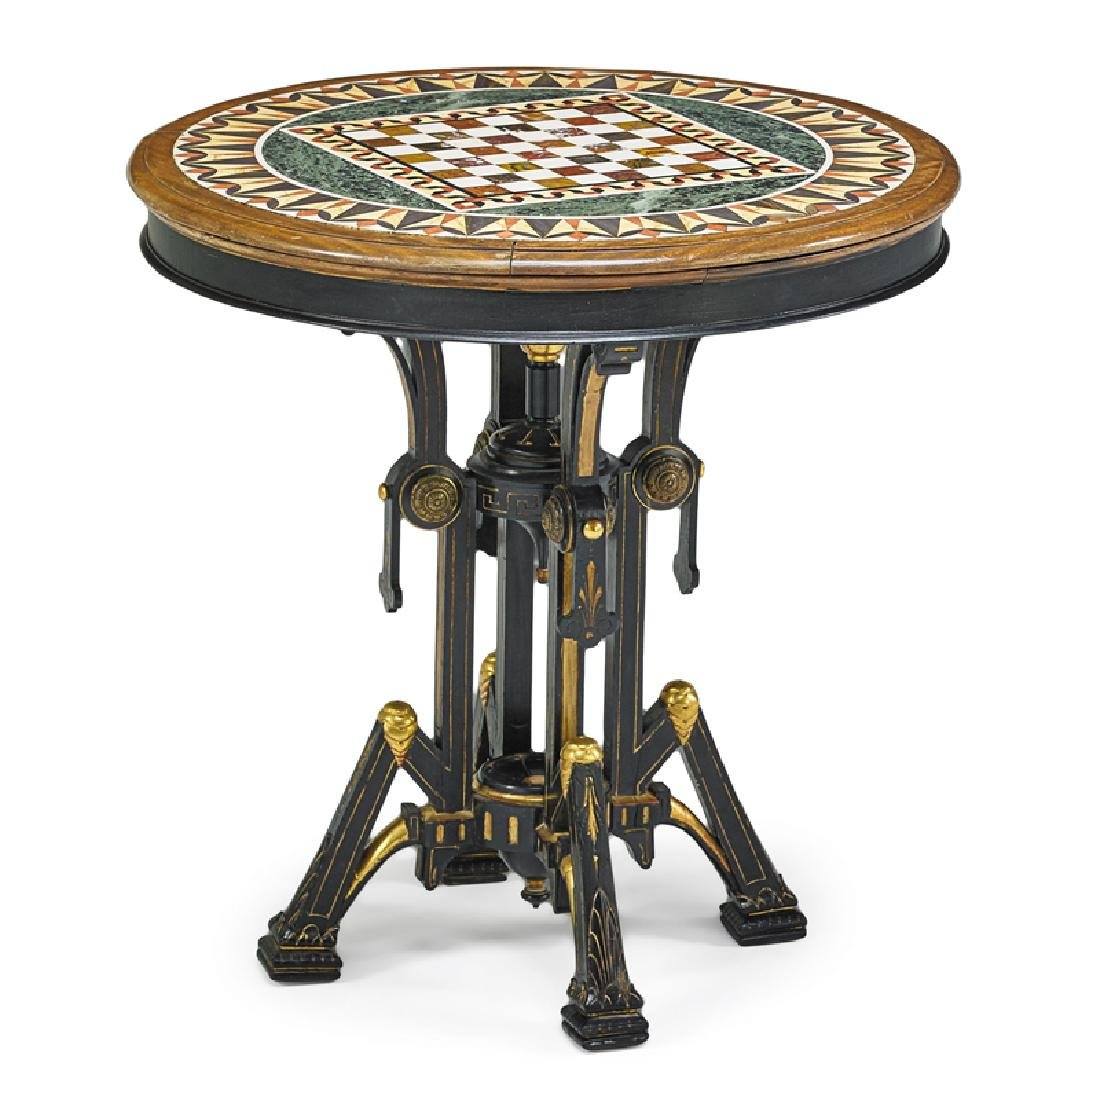 VICTORIAN AESTHETIC MOVEMENT SPECIMEN TOP TABLE